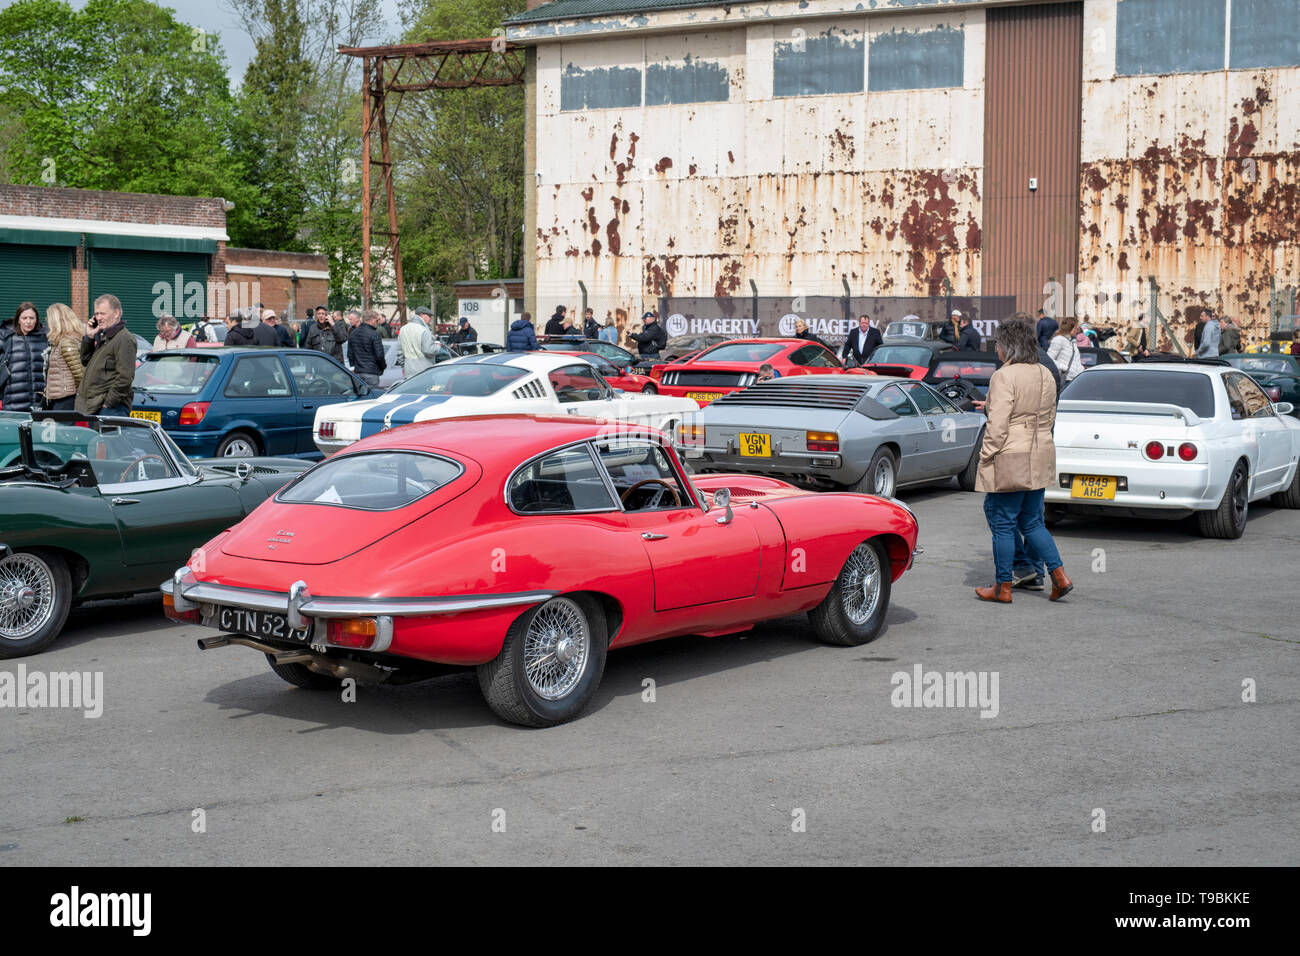 E type Jaguar and other classic cars at Bicester Heritage Centre. 'Drive it day'. Bicester, Oxfordshire, England - Stock Image